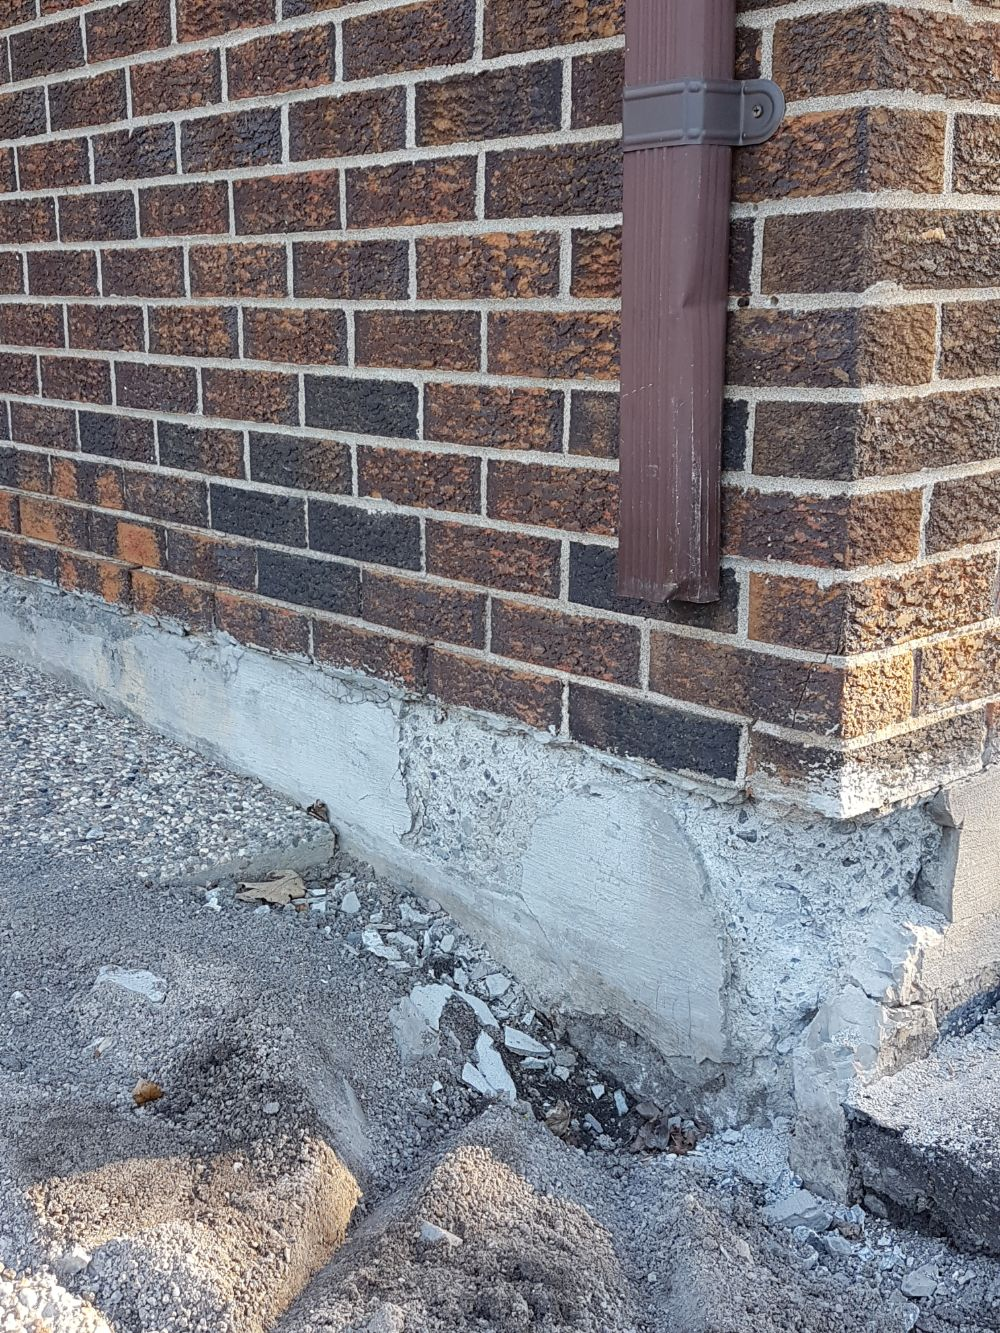 Foundation that needs repairing